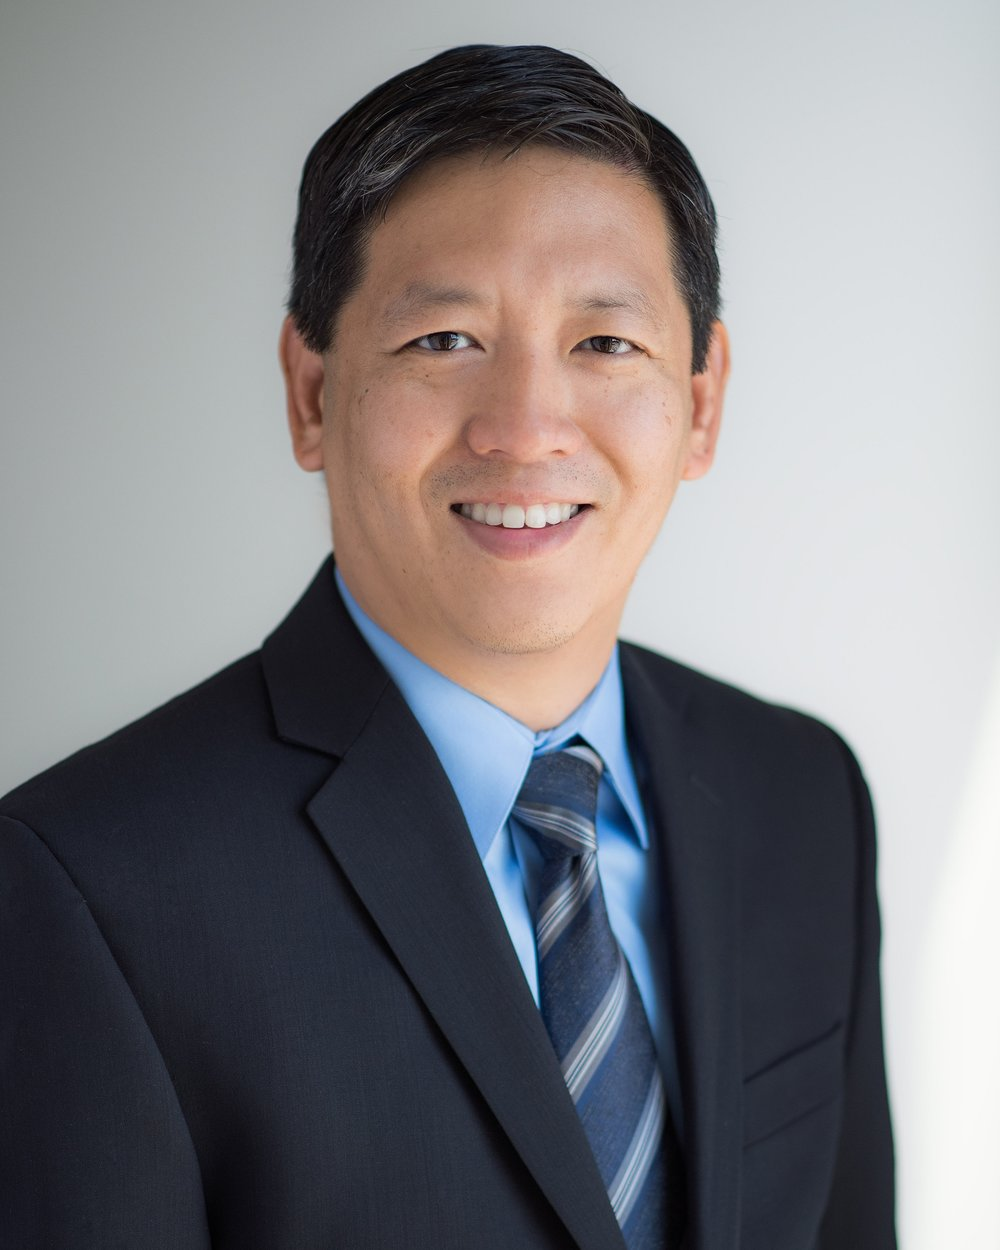 Felix Feng, MD - Vice Chair for Faculty Development & Translational Research, Dept of Radiation OncologyAssociate Professor of Radiation Oncology, Urology, and MedicineDr. Felix Feng is an expert in translational genomics and pre-clinical therapeutics for prostate cancer and has co-authored over 200 journal articles. Dr. Feng received his undergraduate degree from Stanford University, his medical degree at Washington University School of Medicine in St. Louis, and completed his residency training in Radiation Oncology at the University of Michigan. Prior to moving to the University of California, San Francisco in 2016, Dr. Feng was a faculty member of Radiation Oncology, Director of the Division of Translational Genomics, and Associate Chair for Laboratory Research at the University of Michigan.